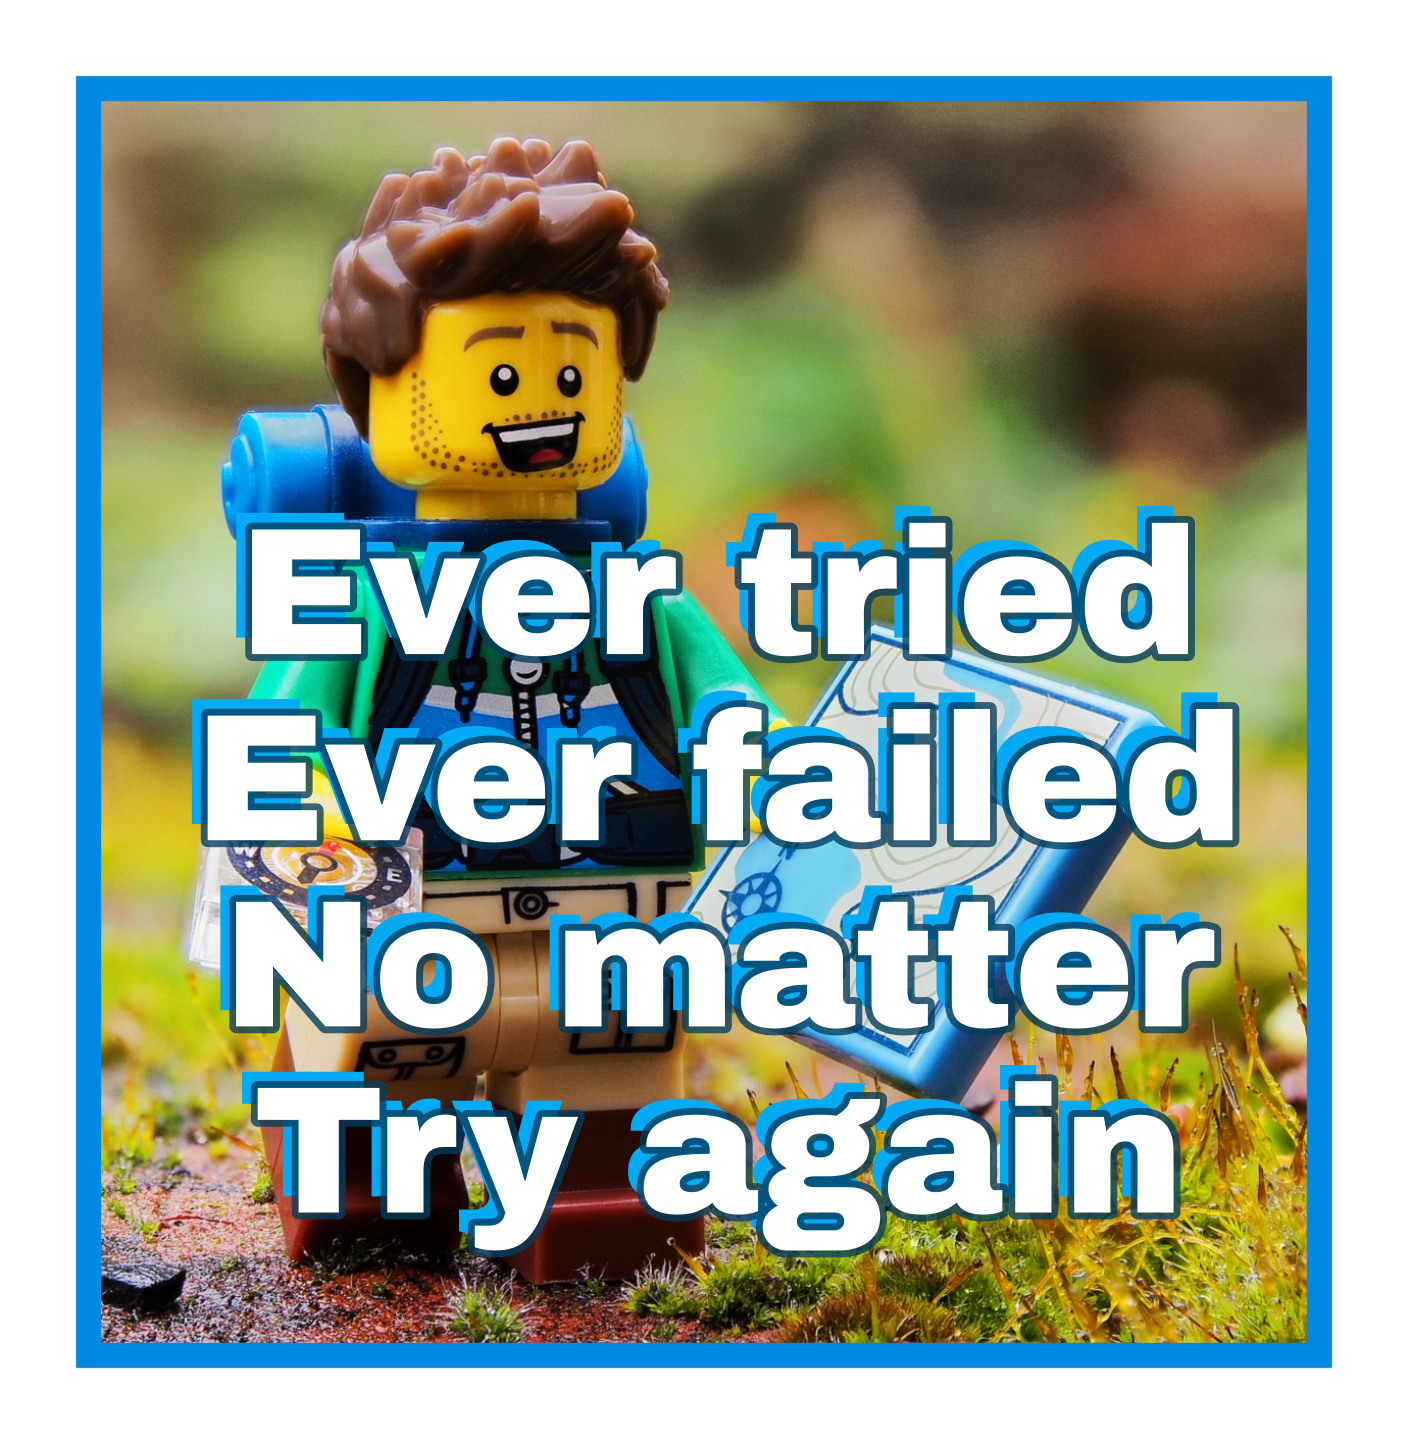 Samuel Beckett Quote Ever tried ever failed ... try again